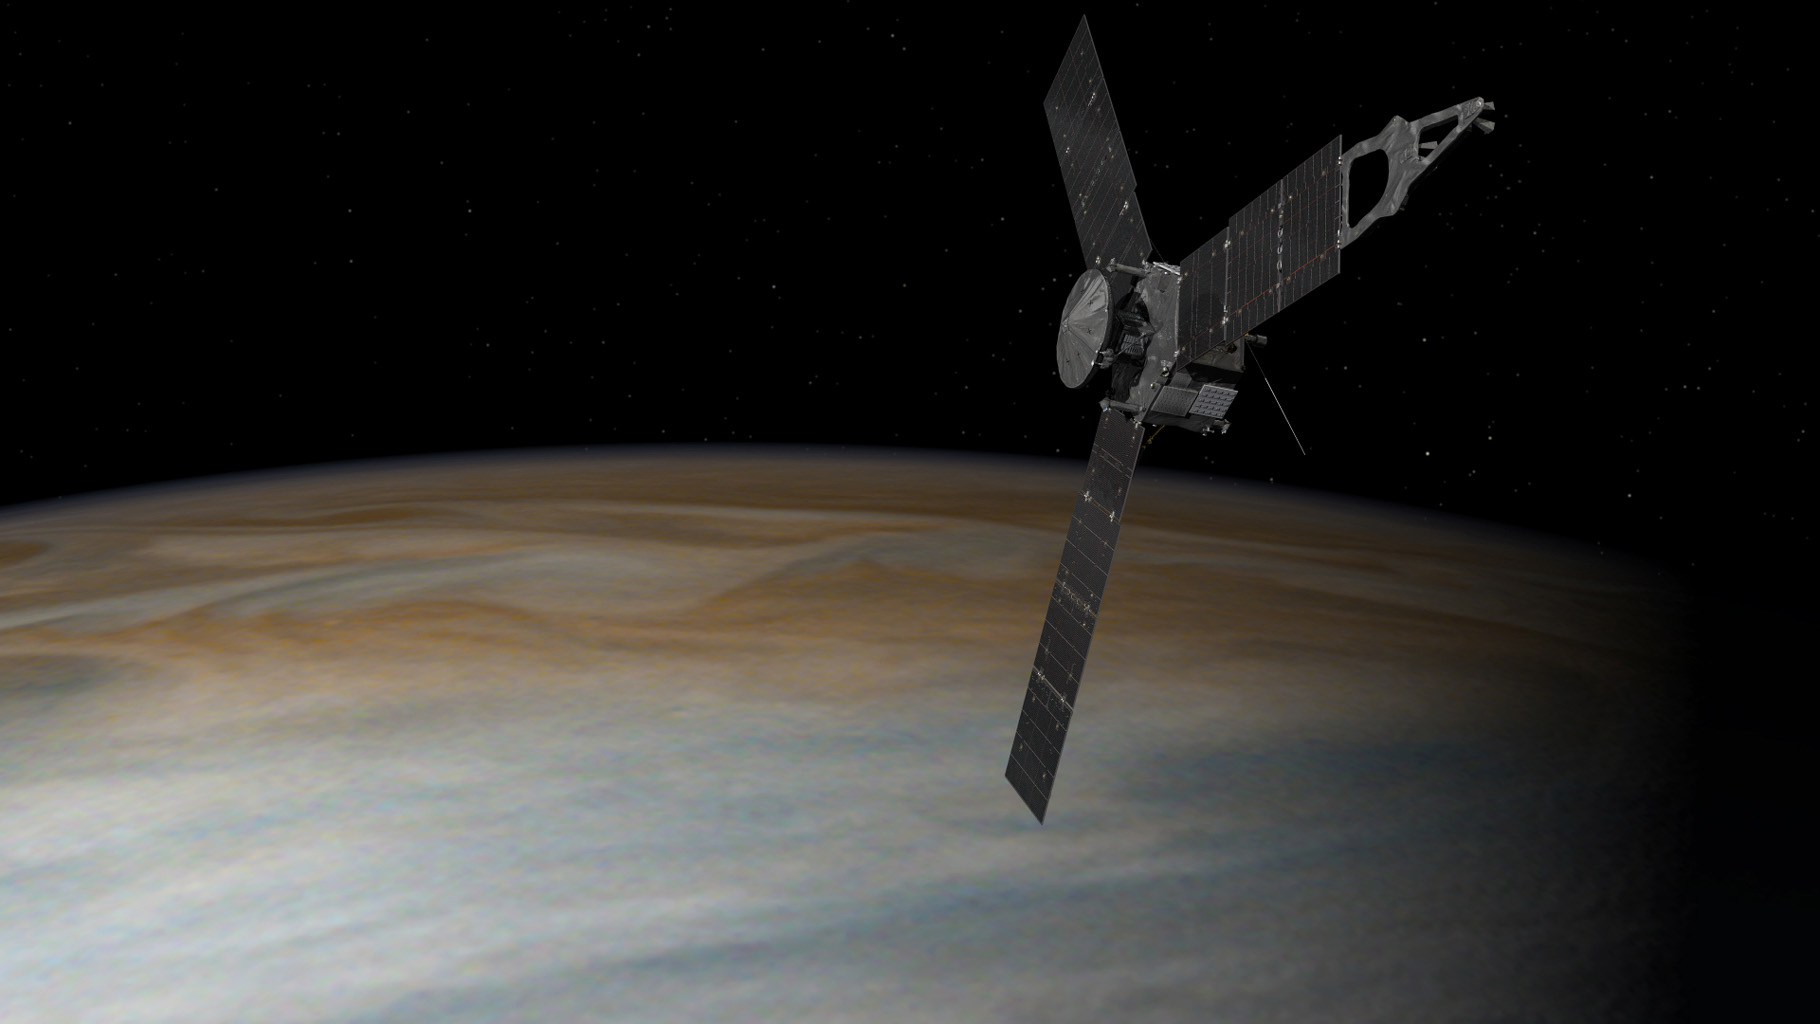 This illustration depicts NASA's Juno spacecraft in orbit above Jupiter. From its unique polar orbit, Juno will repeatedly dive between the planet and its intense belts of charged particle radiation, coming only about 3,000 miles (5,000 kilometers) from the cloud tops at closest approach.